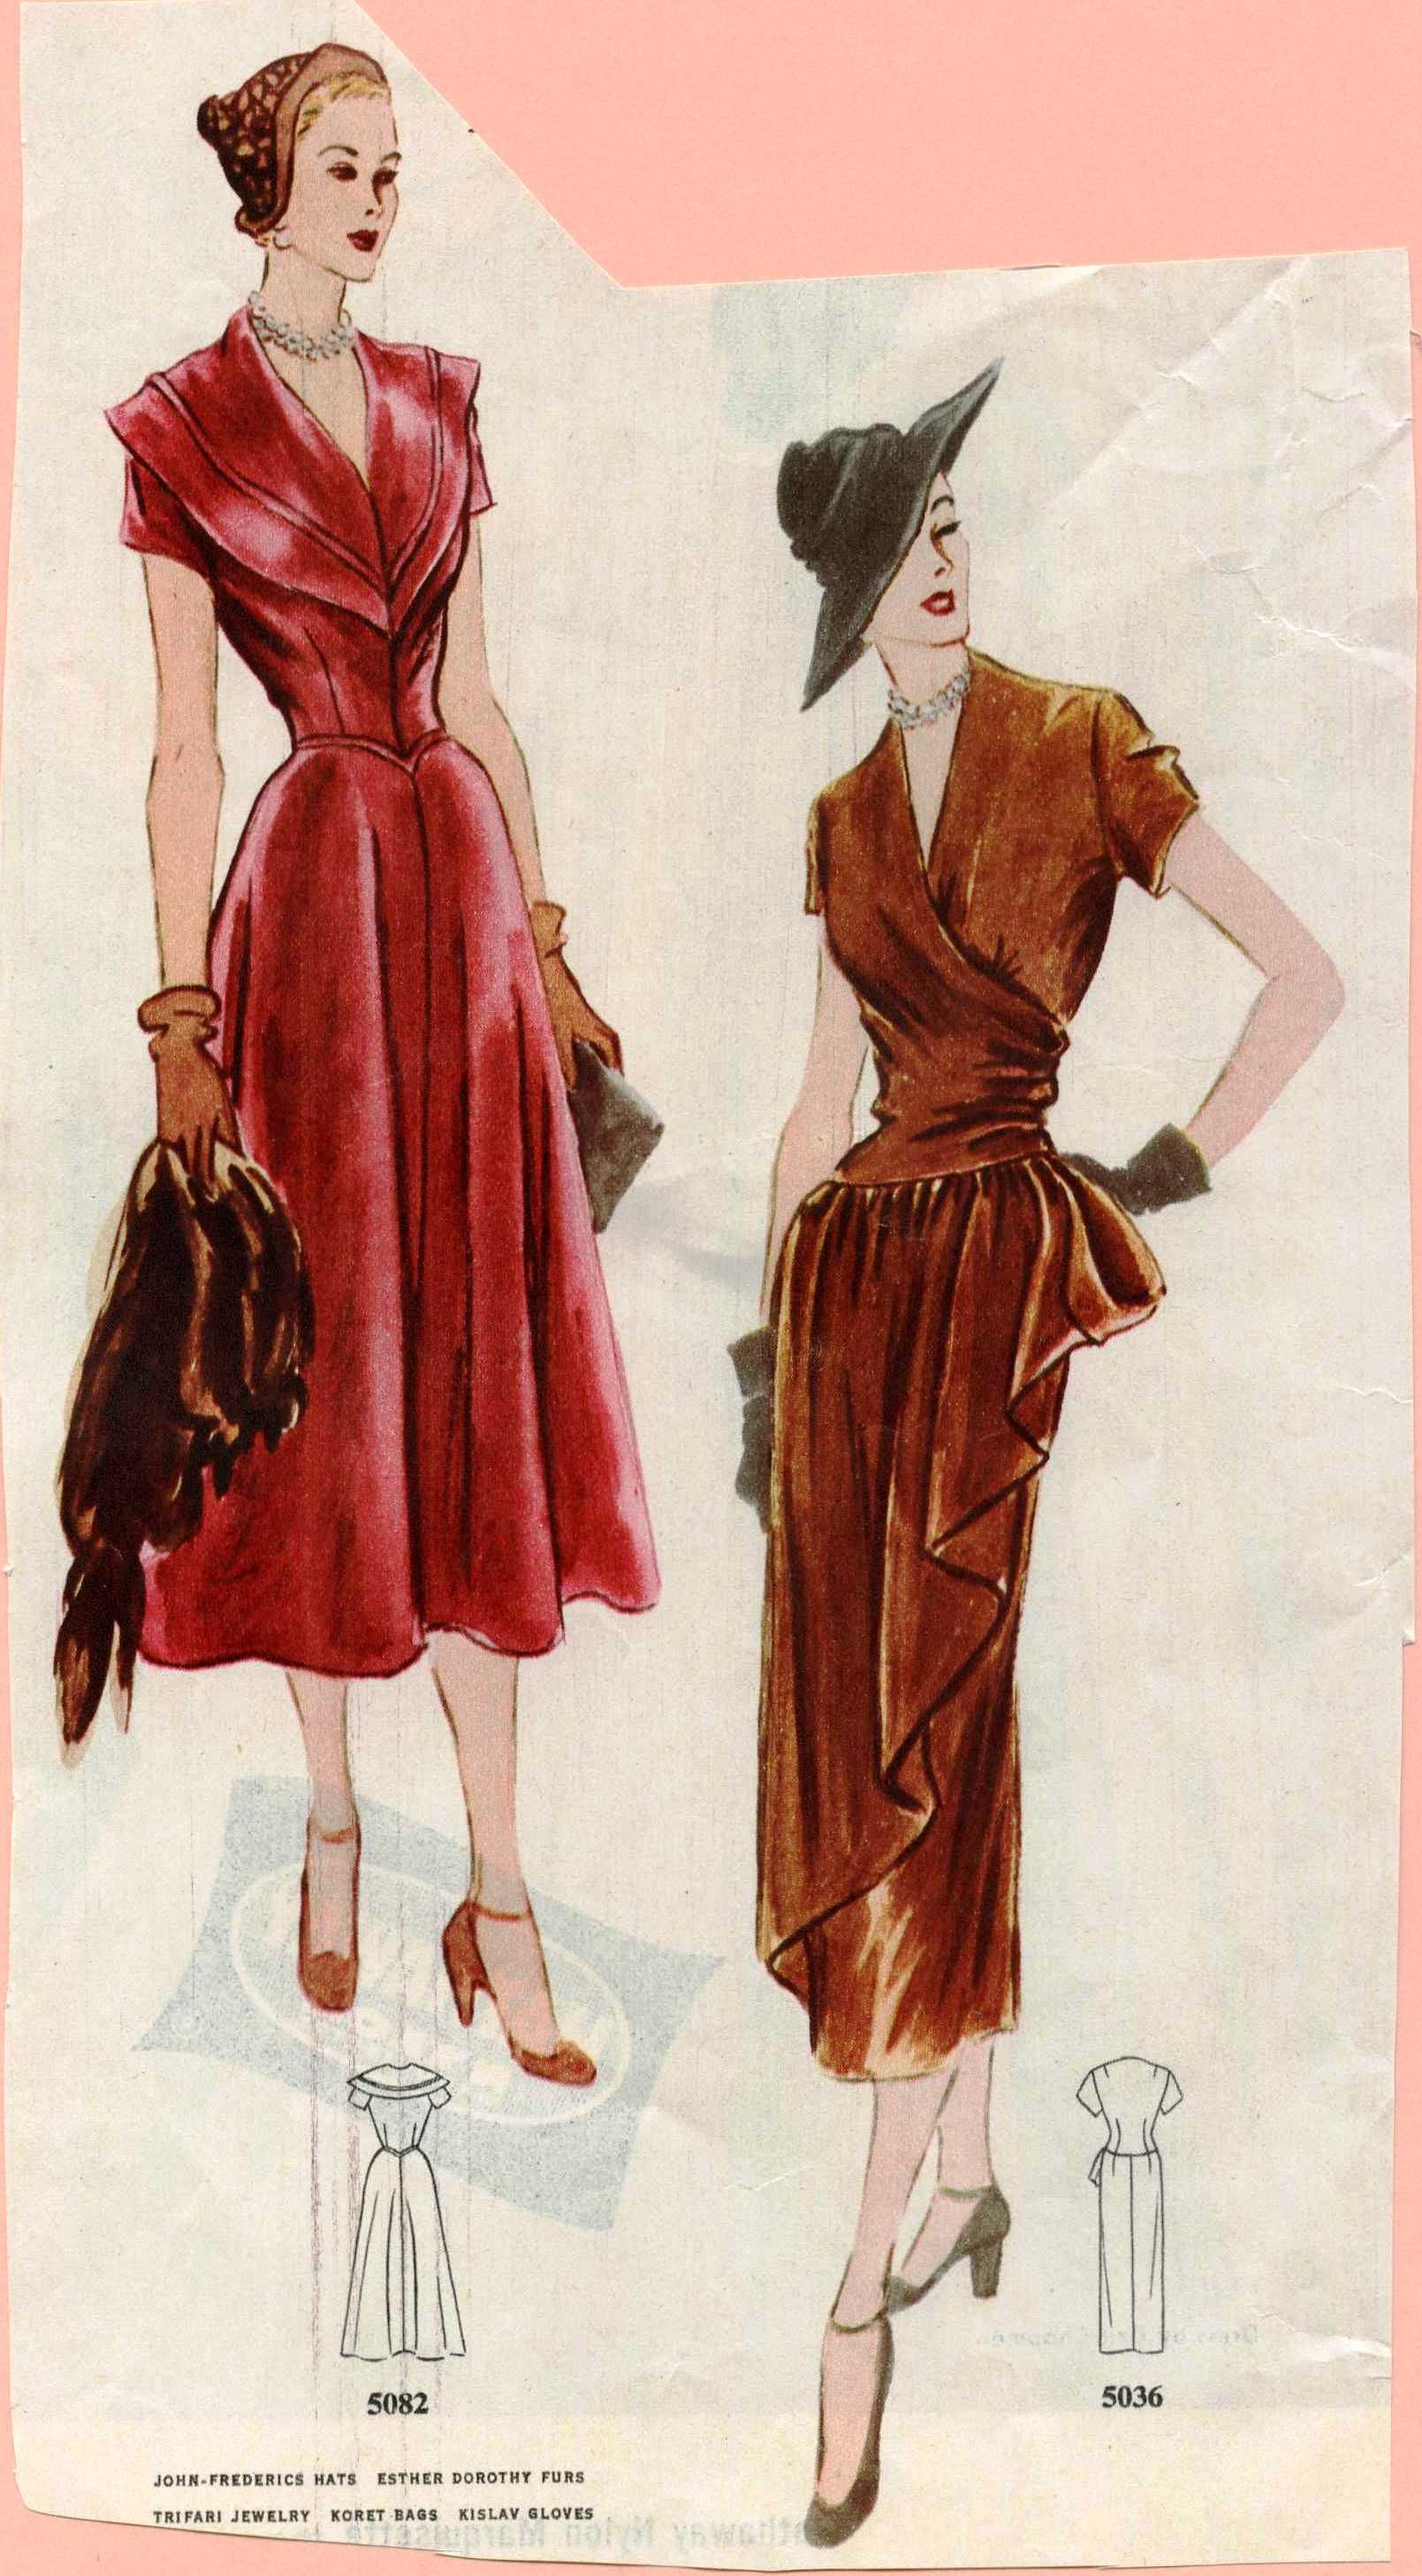 59d48c0d4b Late 40s red brown bronze satin dress cocktail wear color illustration  print ad vintage fashion style